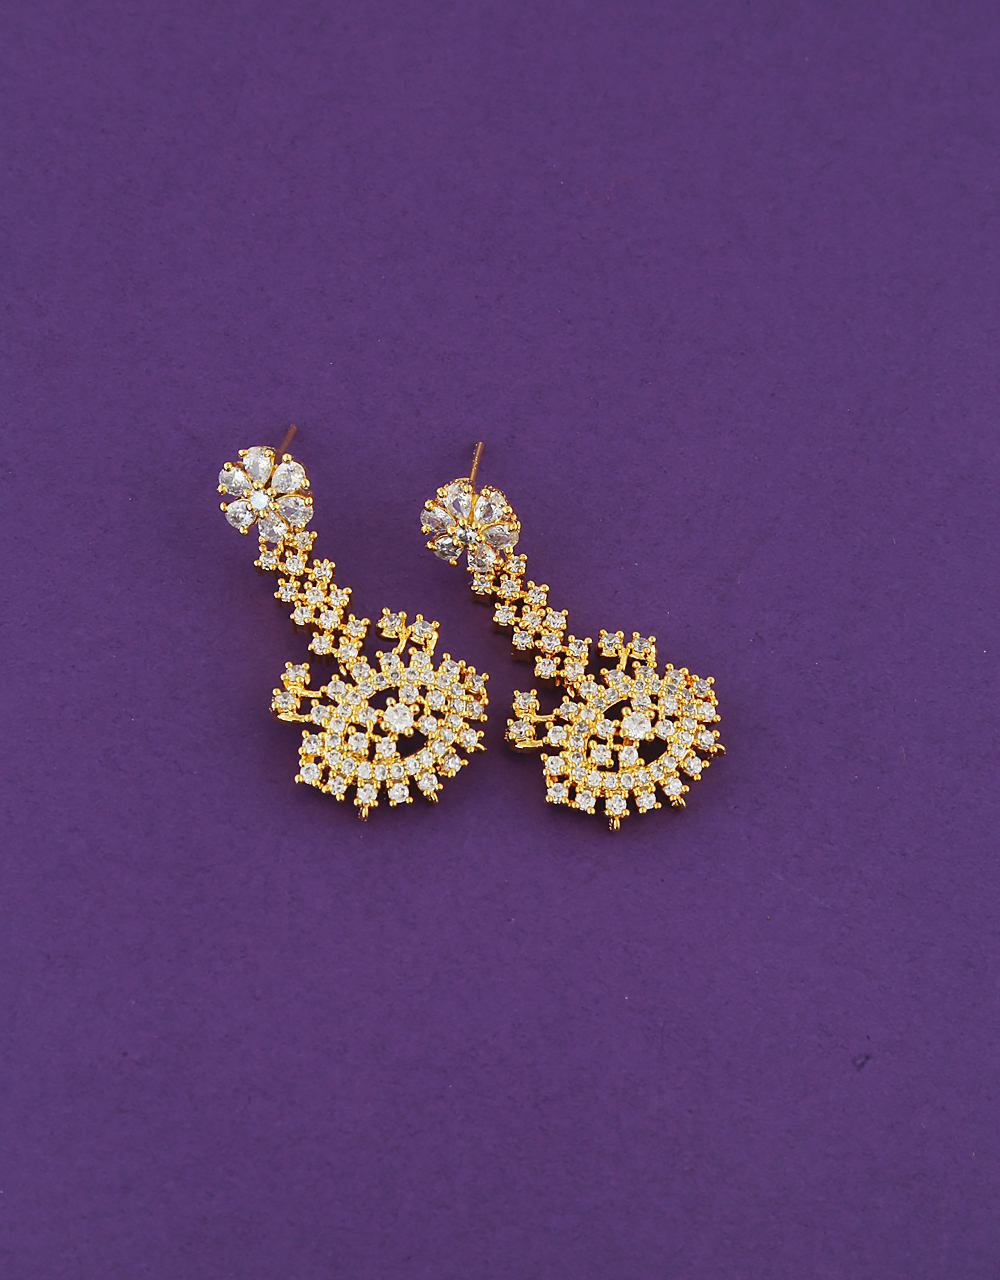 Floral Design Gold Finish American Diamond Earrings